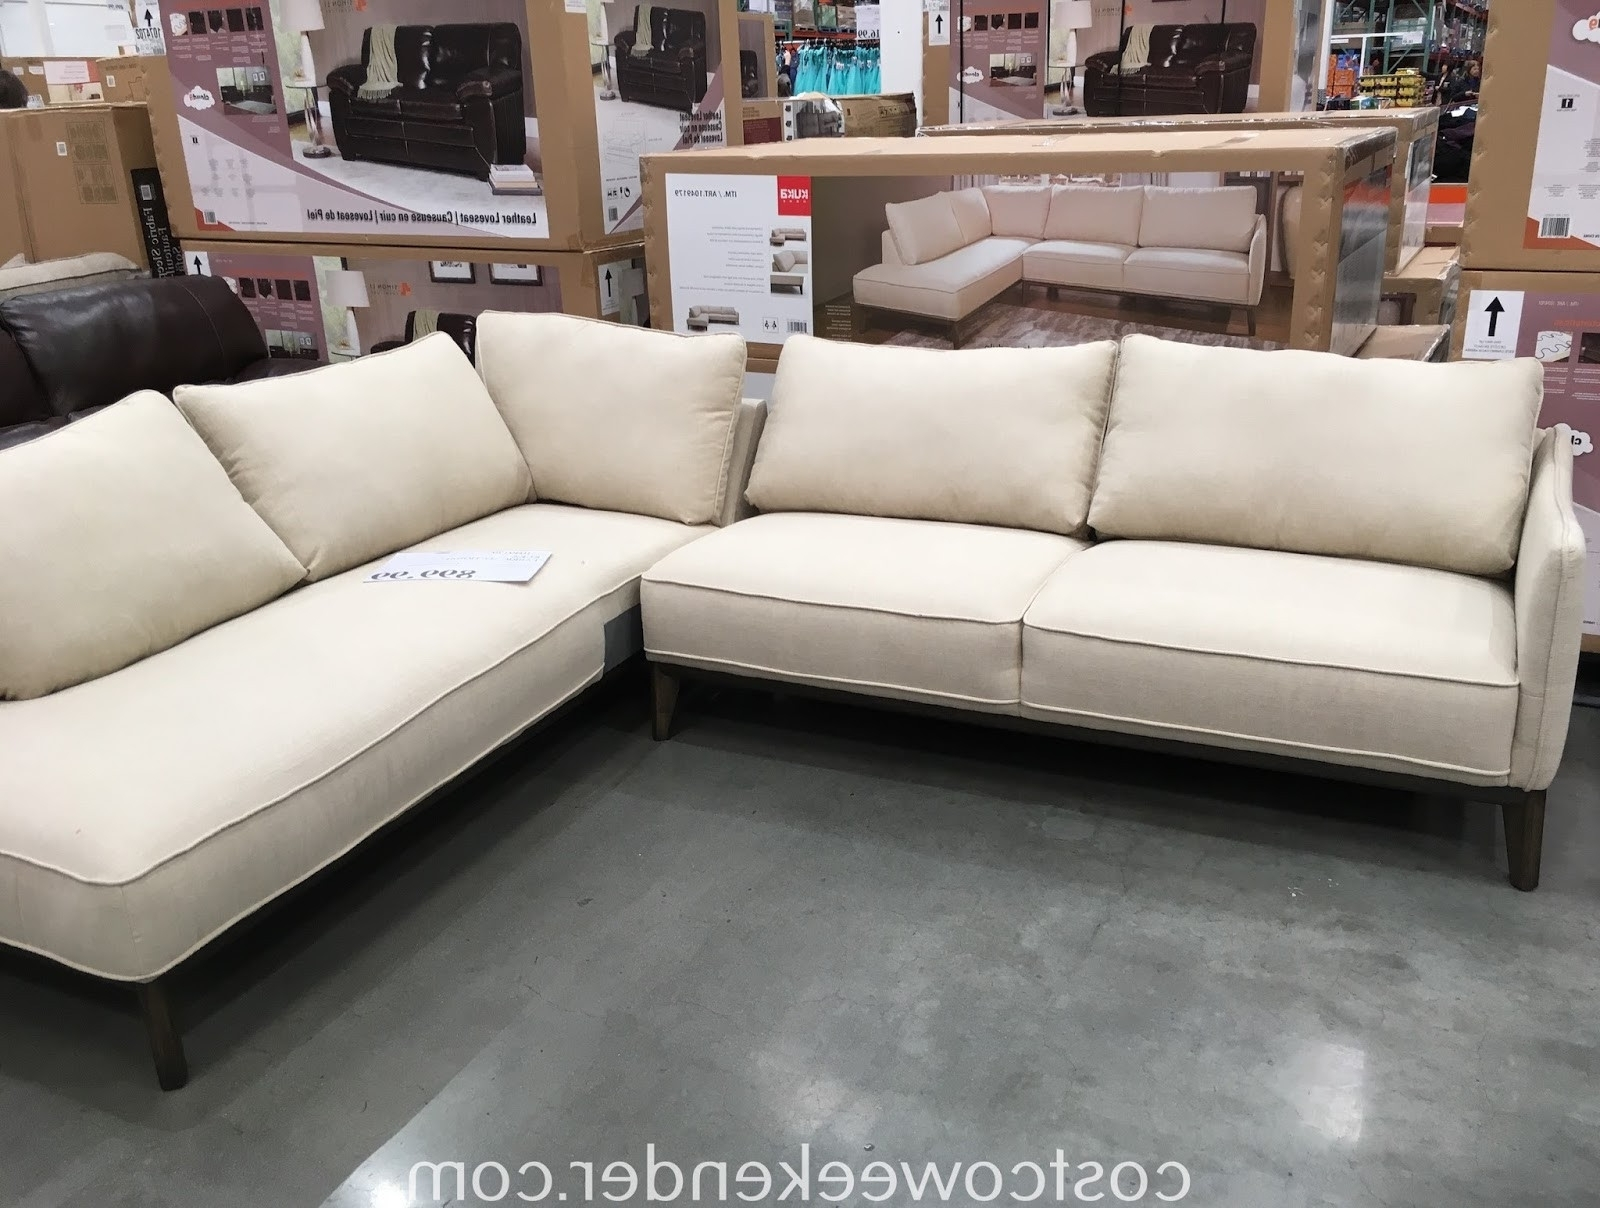 Furniture : Costco Furniture Reviews 2017 New Best Quality Within Most Current Quality Sectional Sofas (View 3 of 20)